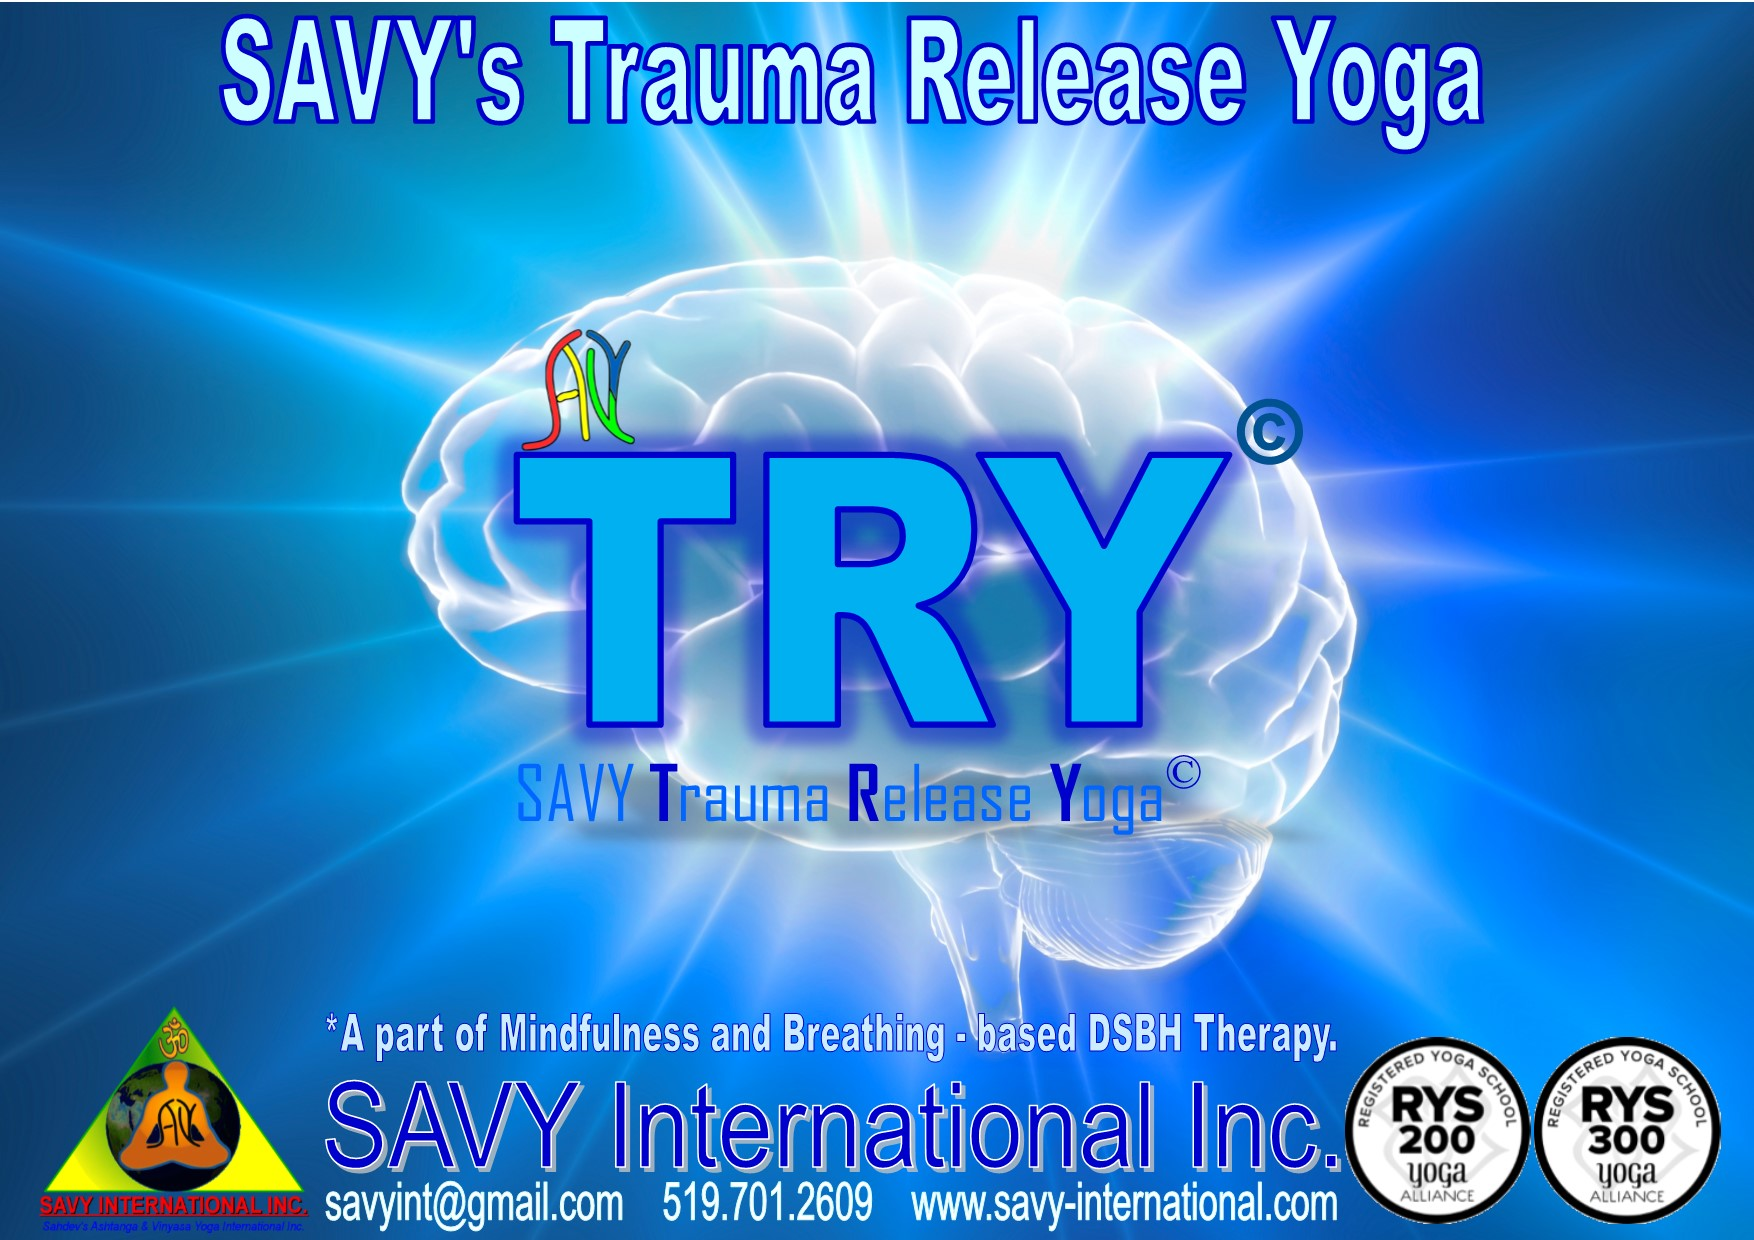 SAVY Trauma Release Yoga - Learn 7 Exercises